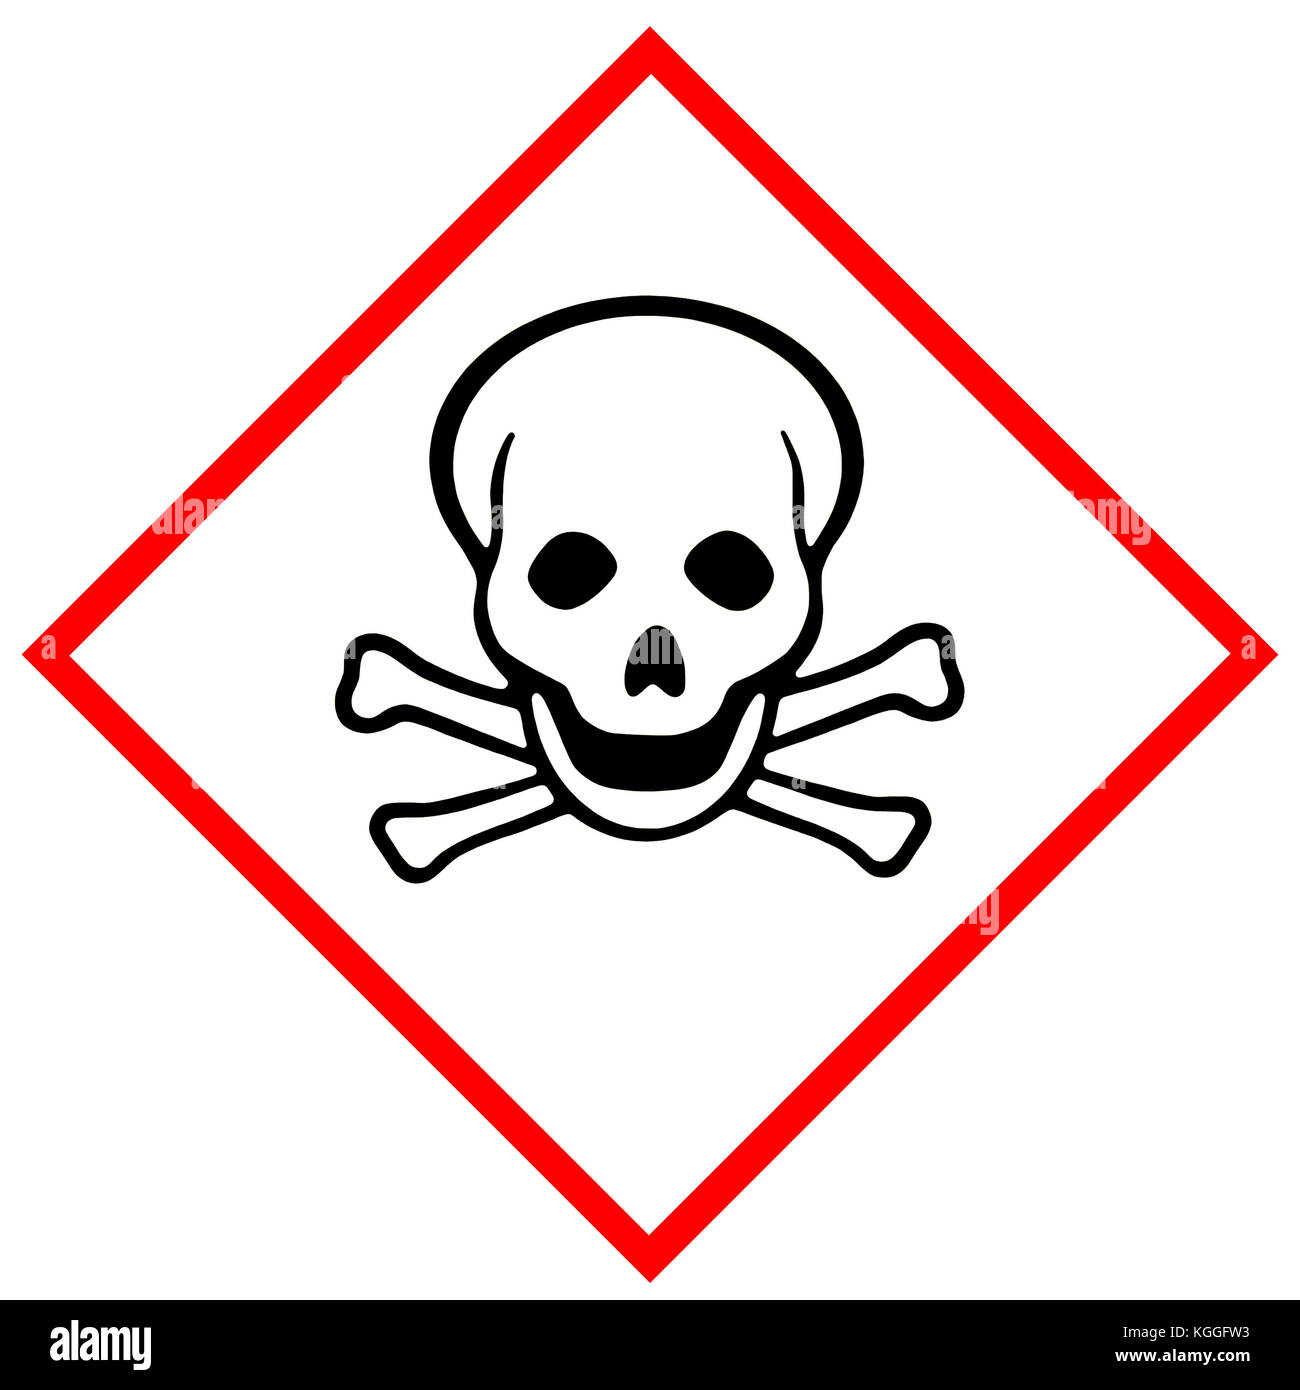 Acute toxicity (Symbol: Skull and crossbones) - Stock Image